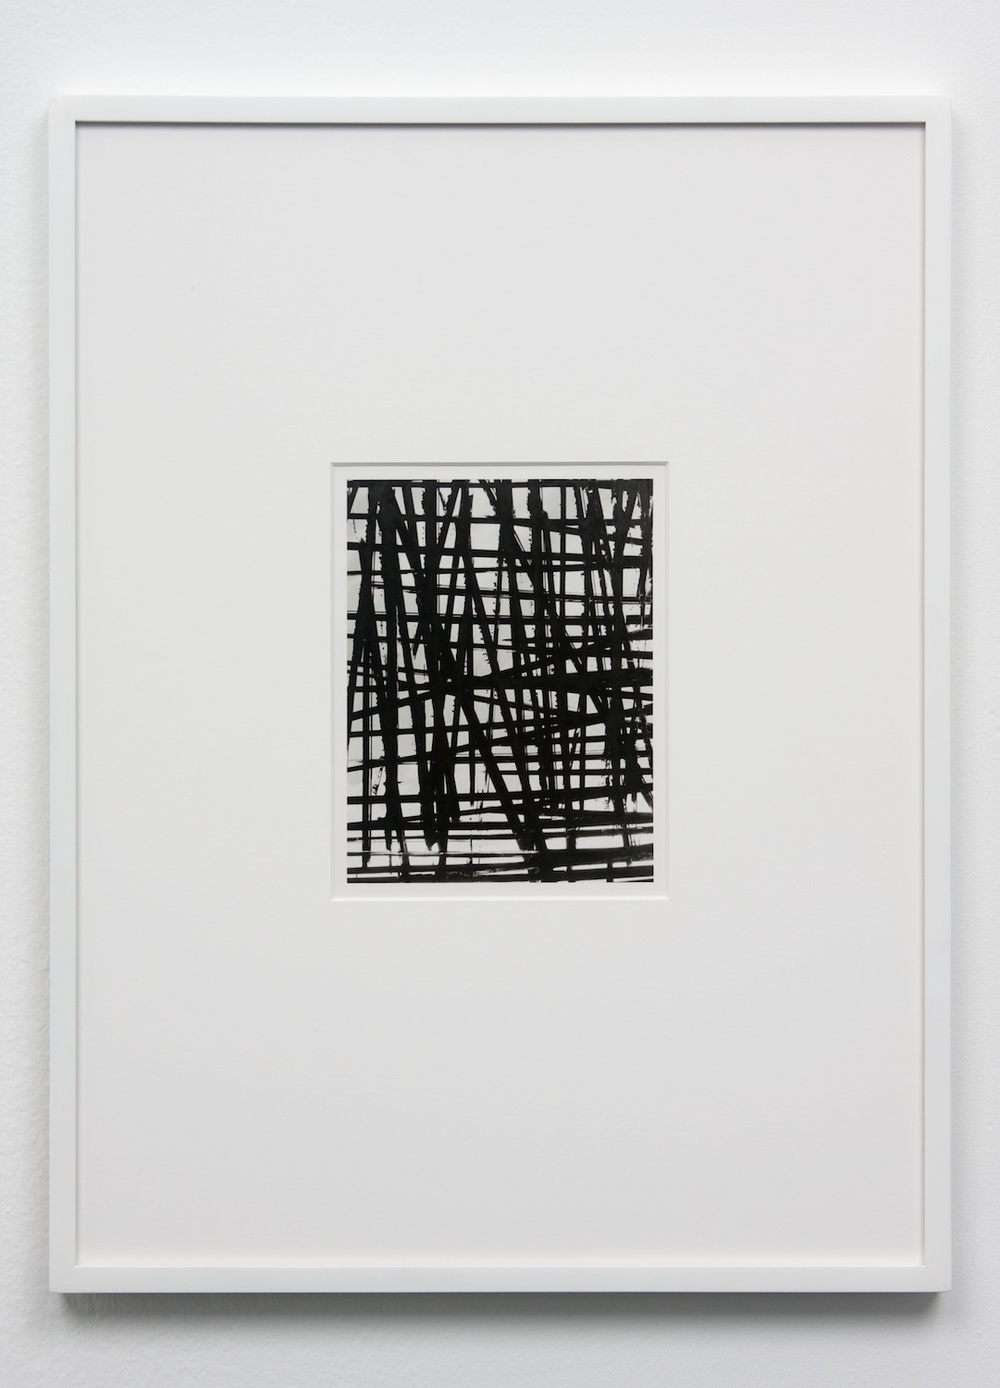 Anthony Pearson  Untitled (Solarization)  2010 Framed solarized silver gelatin photograph 17 ½h x 13 ¼w in AP242